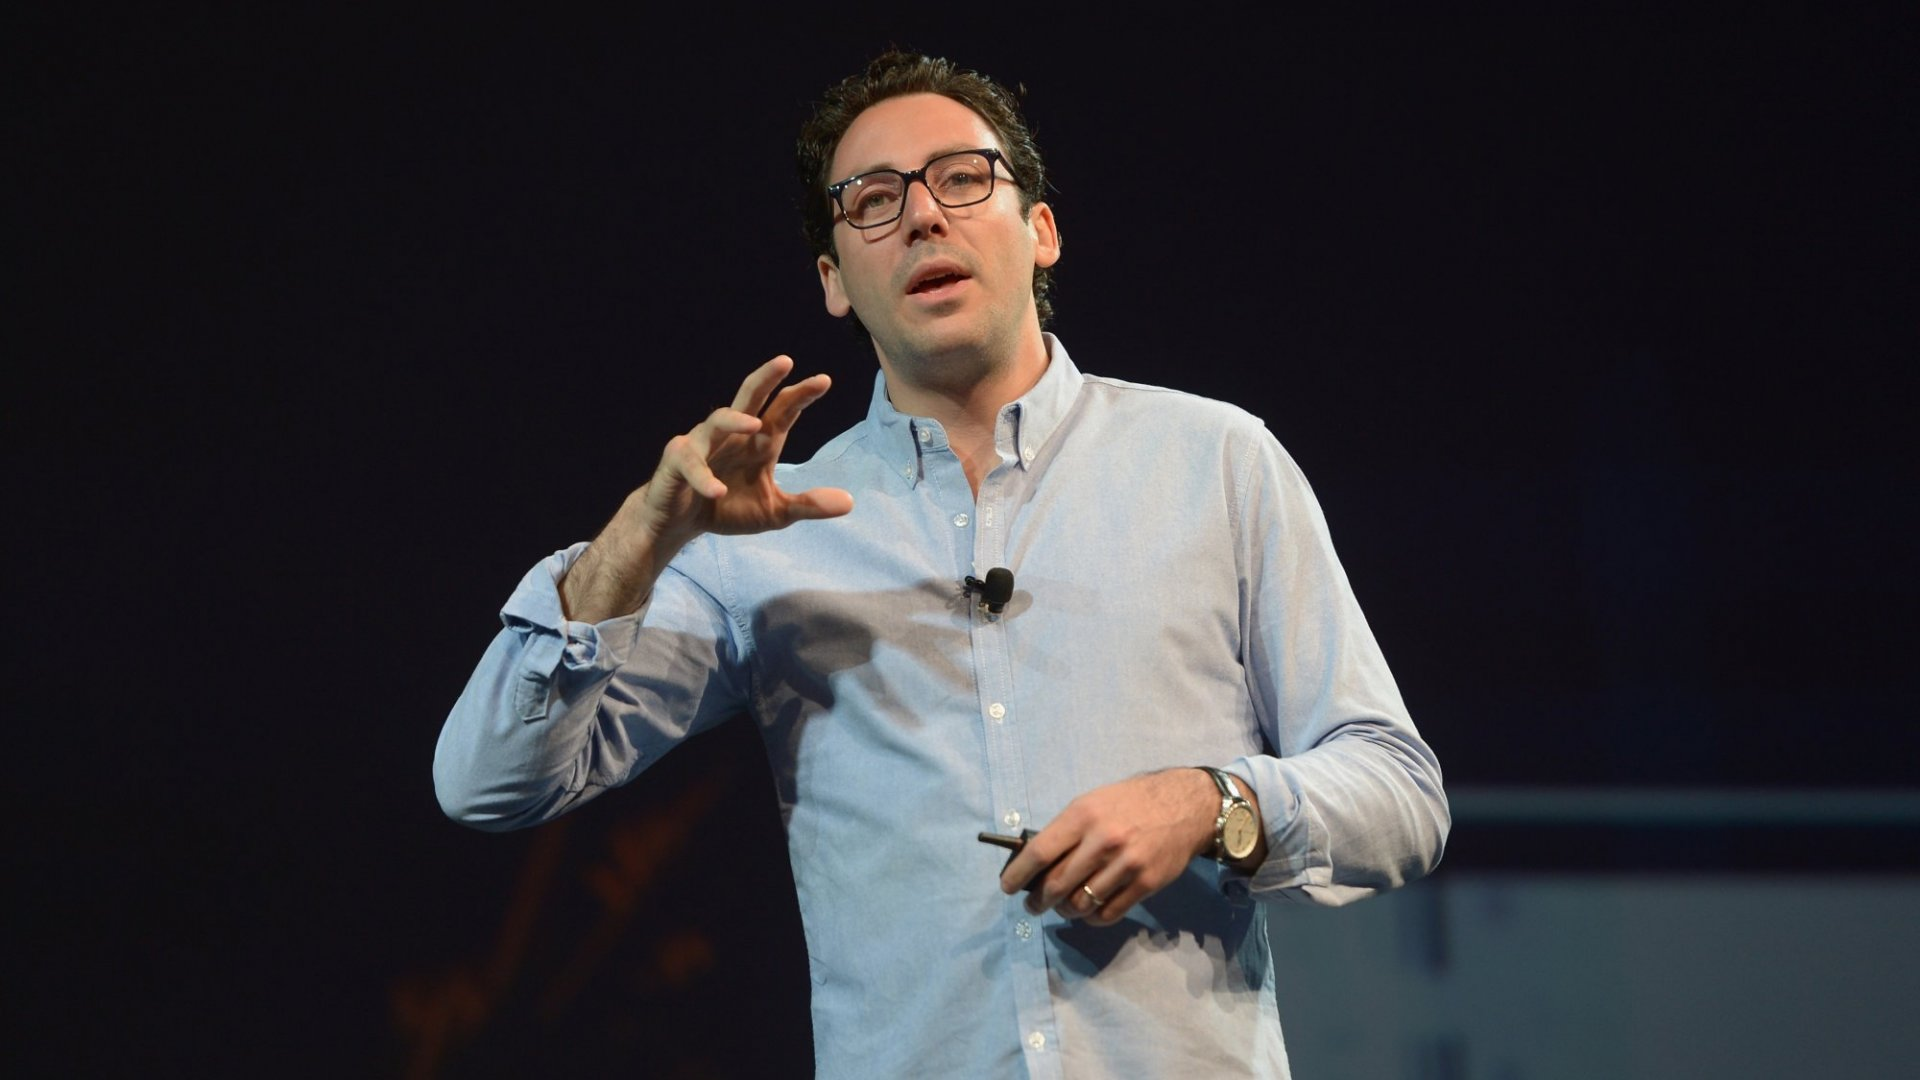 Neil Blumenthal, cofounder of Warby Parker, is the first guest of the Inc. Uncensored podcast.